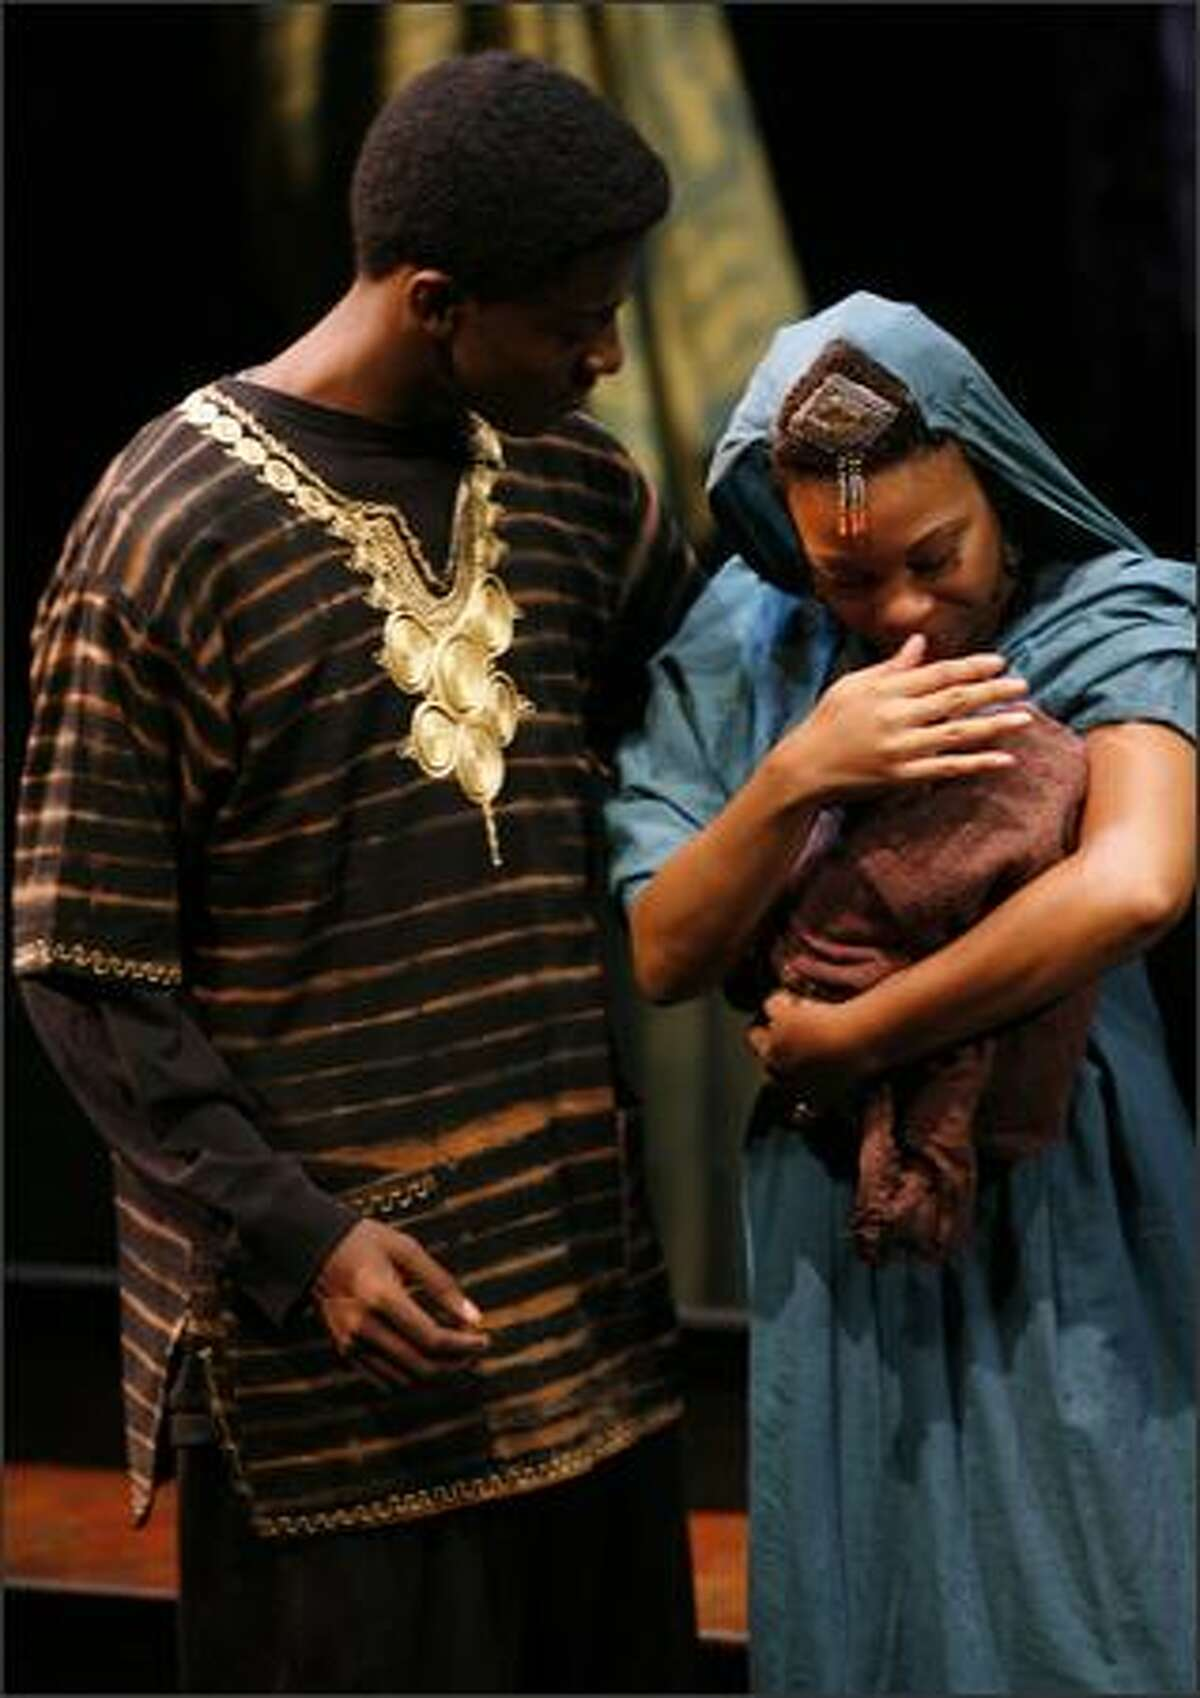 DeShe Brooks leans in to look at baby Jesus in Mary's (Erricka S. Davis) arm.